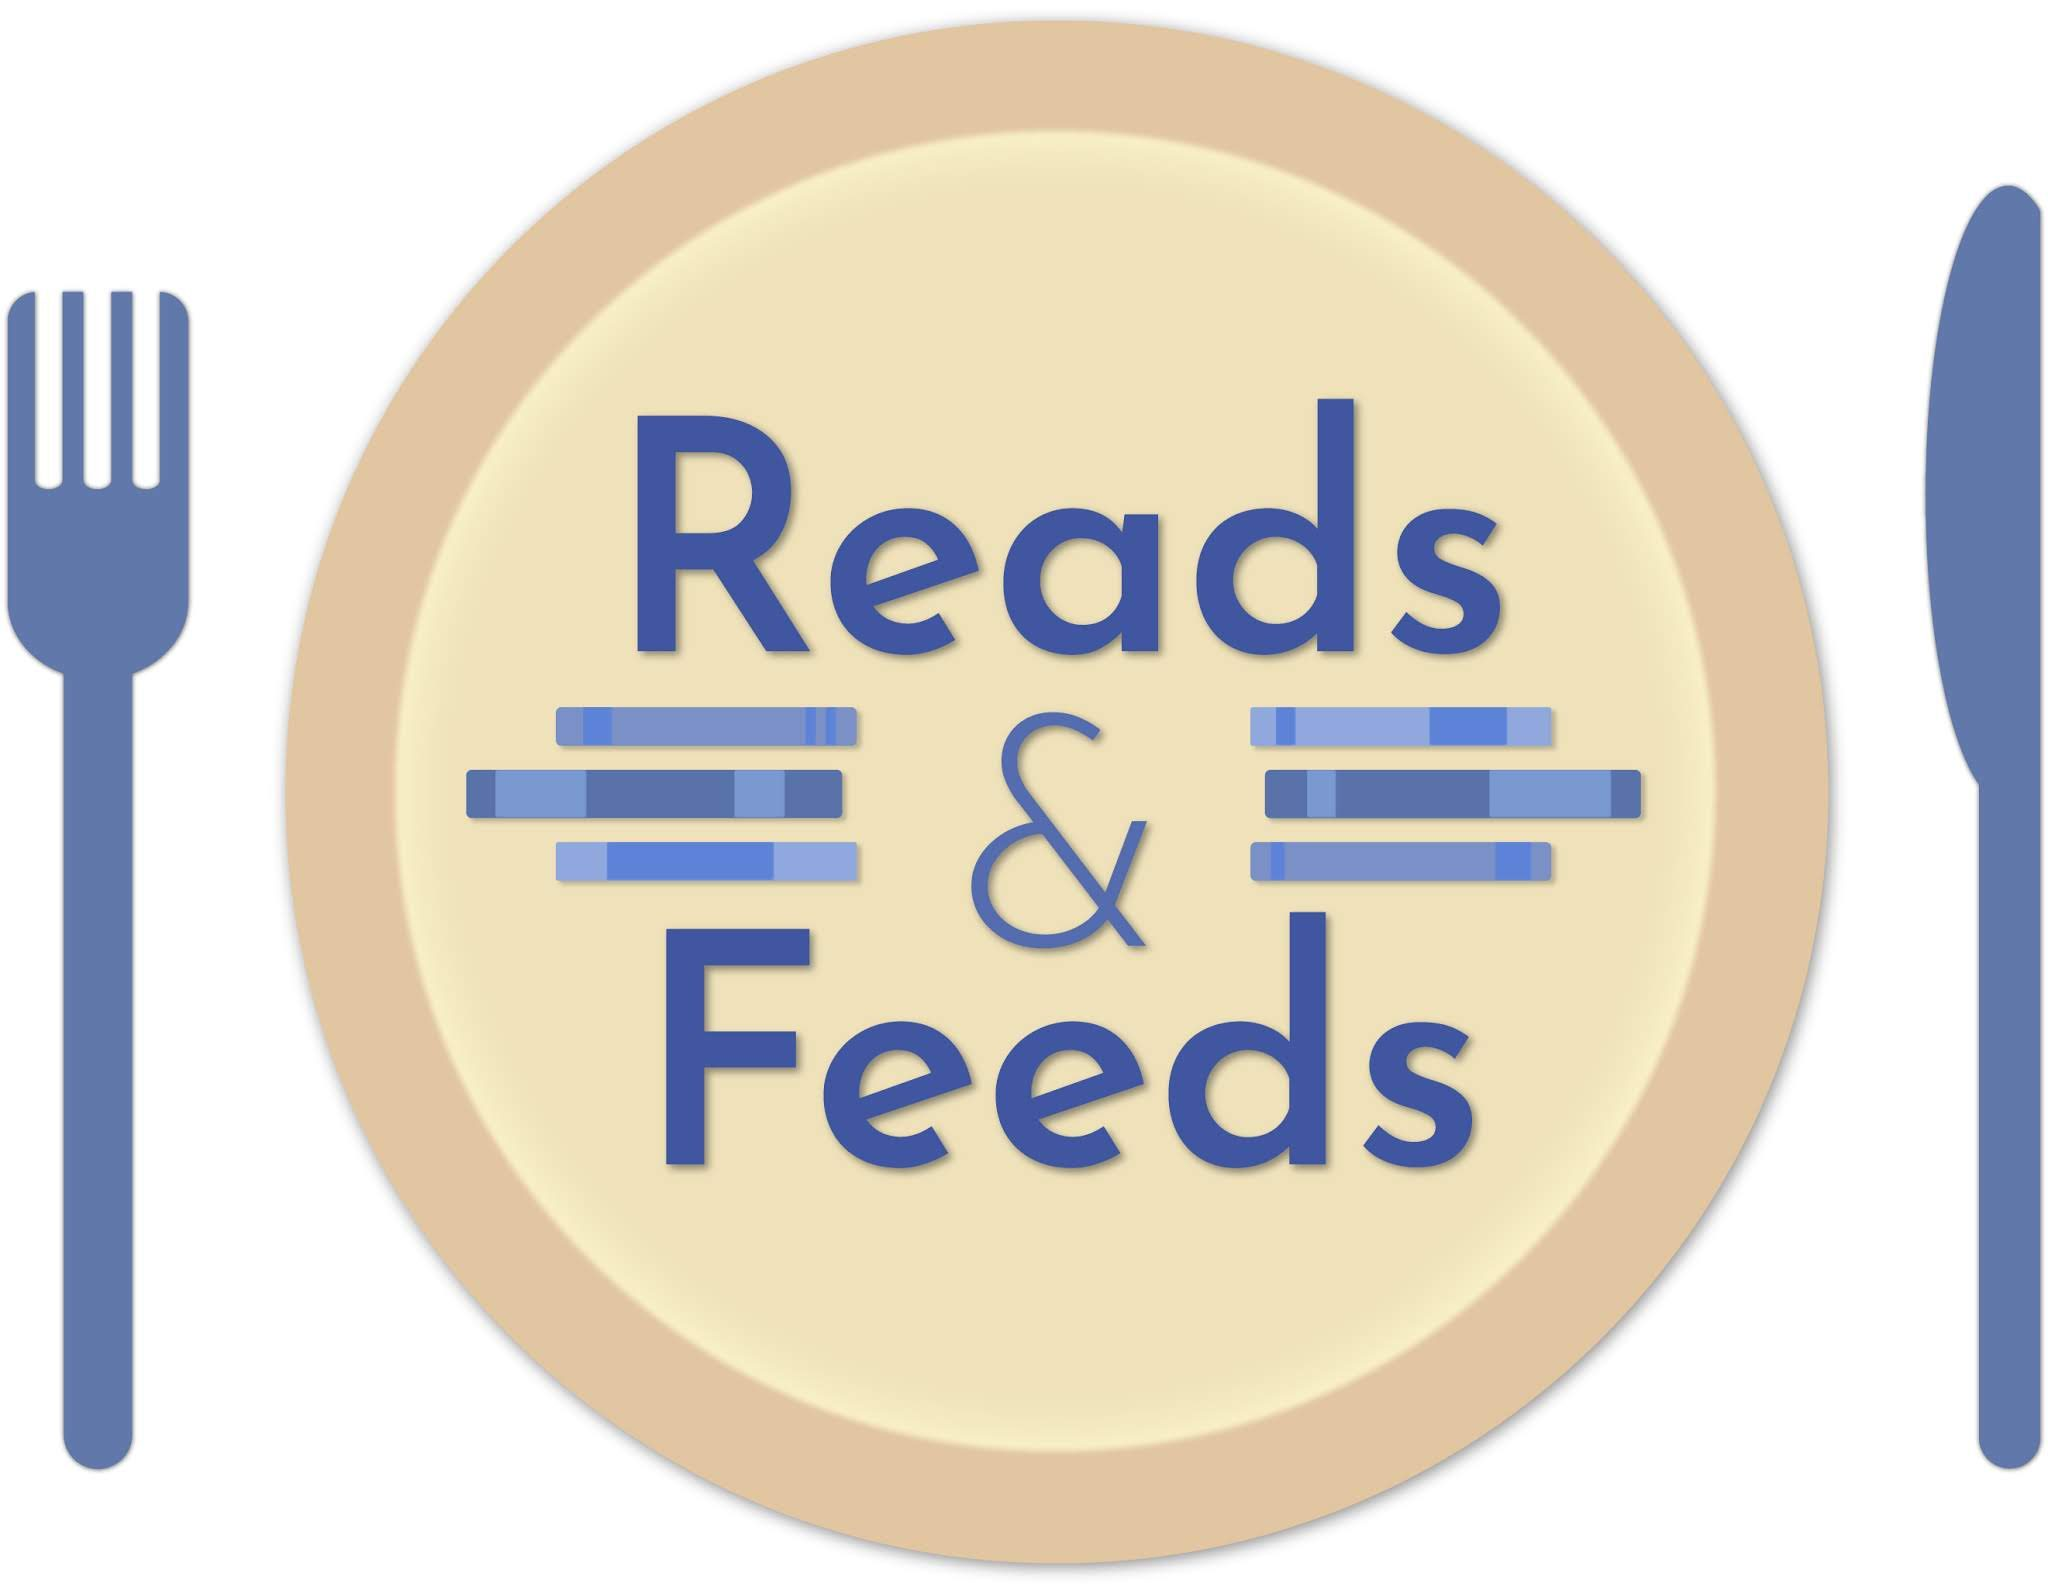 Reads & Feeds